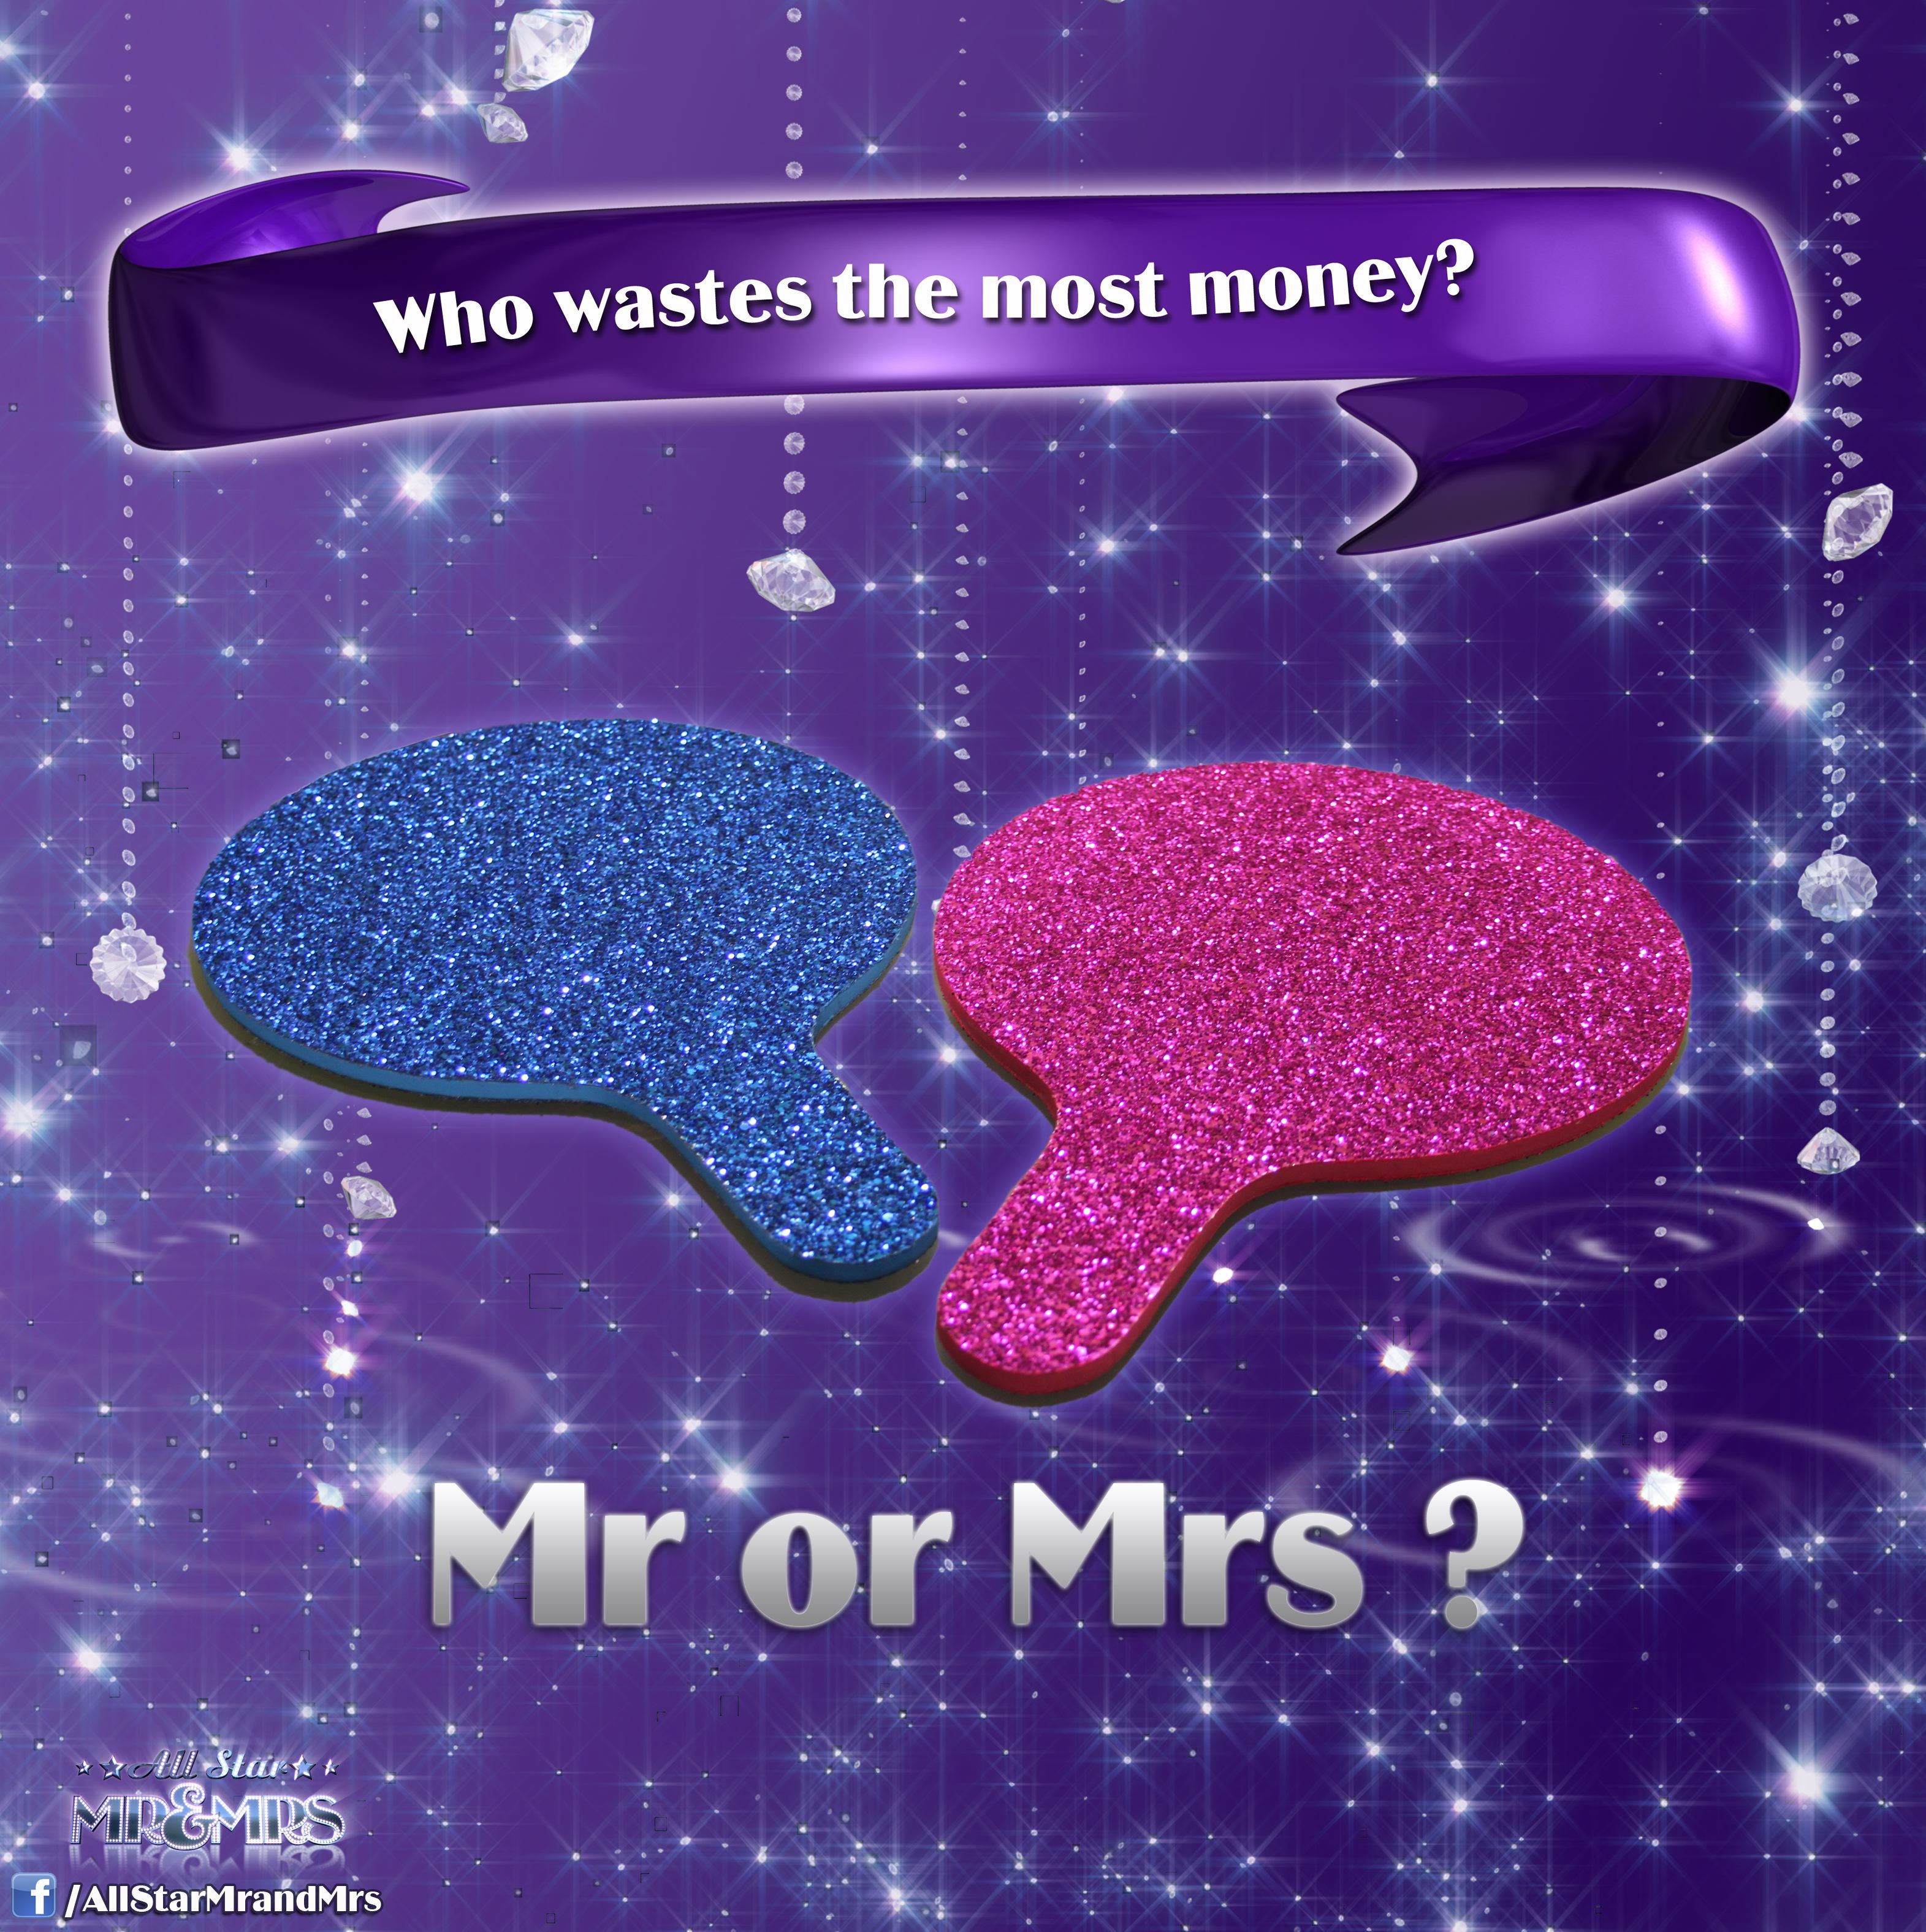 Who Wastes The Most Money Mr OR Mrs? Tell Us